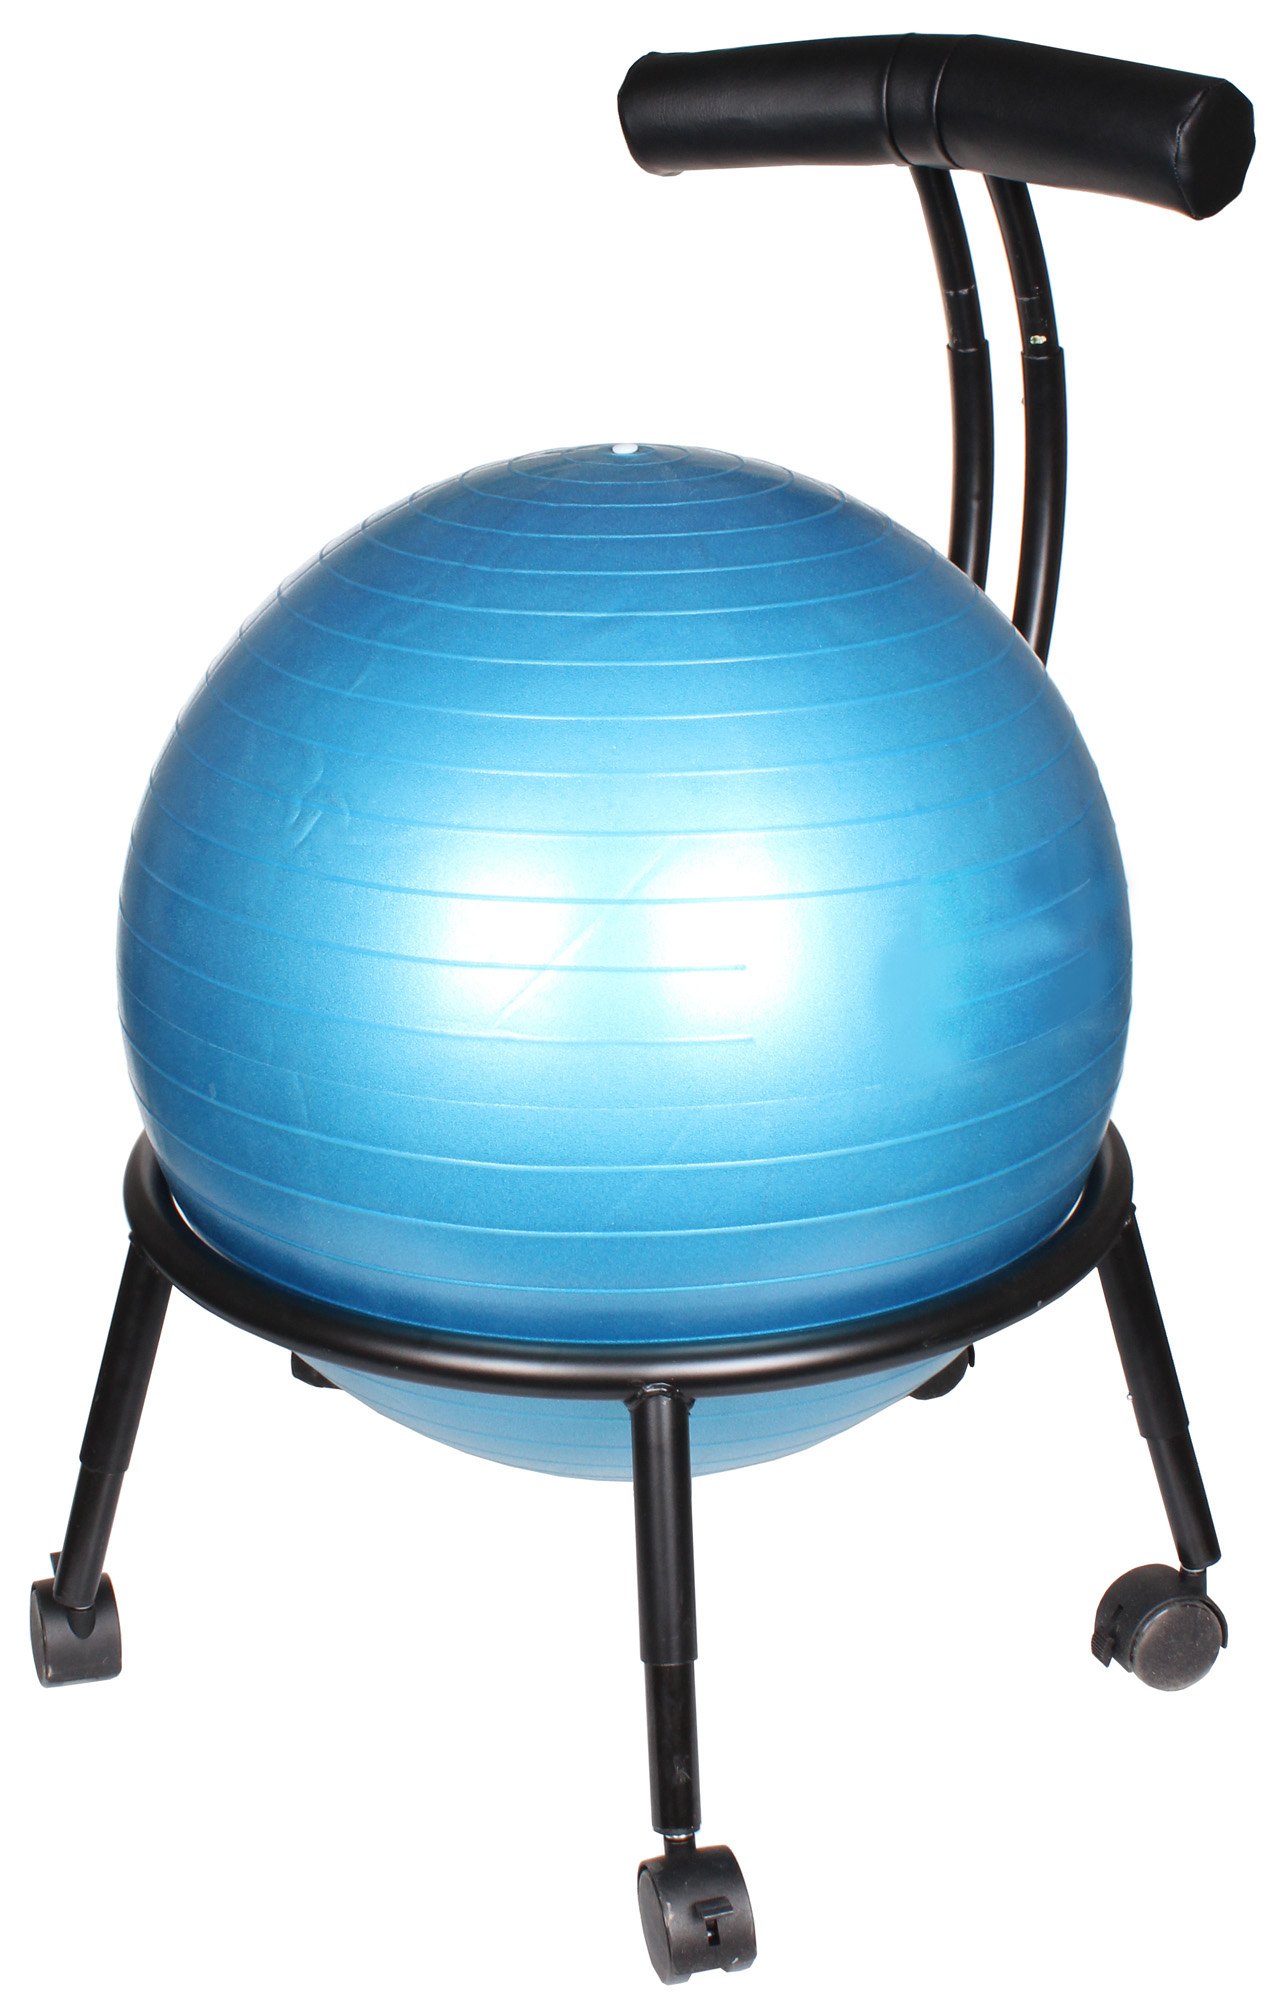 Pilates Ball Chair Yoga Studio Pilates Stability Balance Ball Office